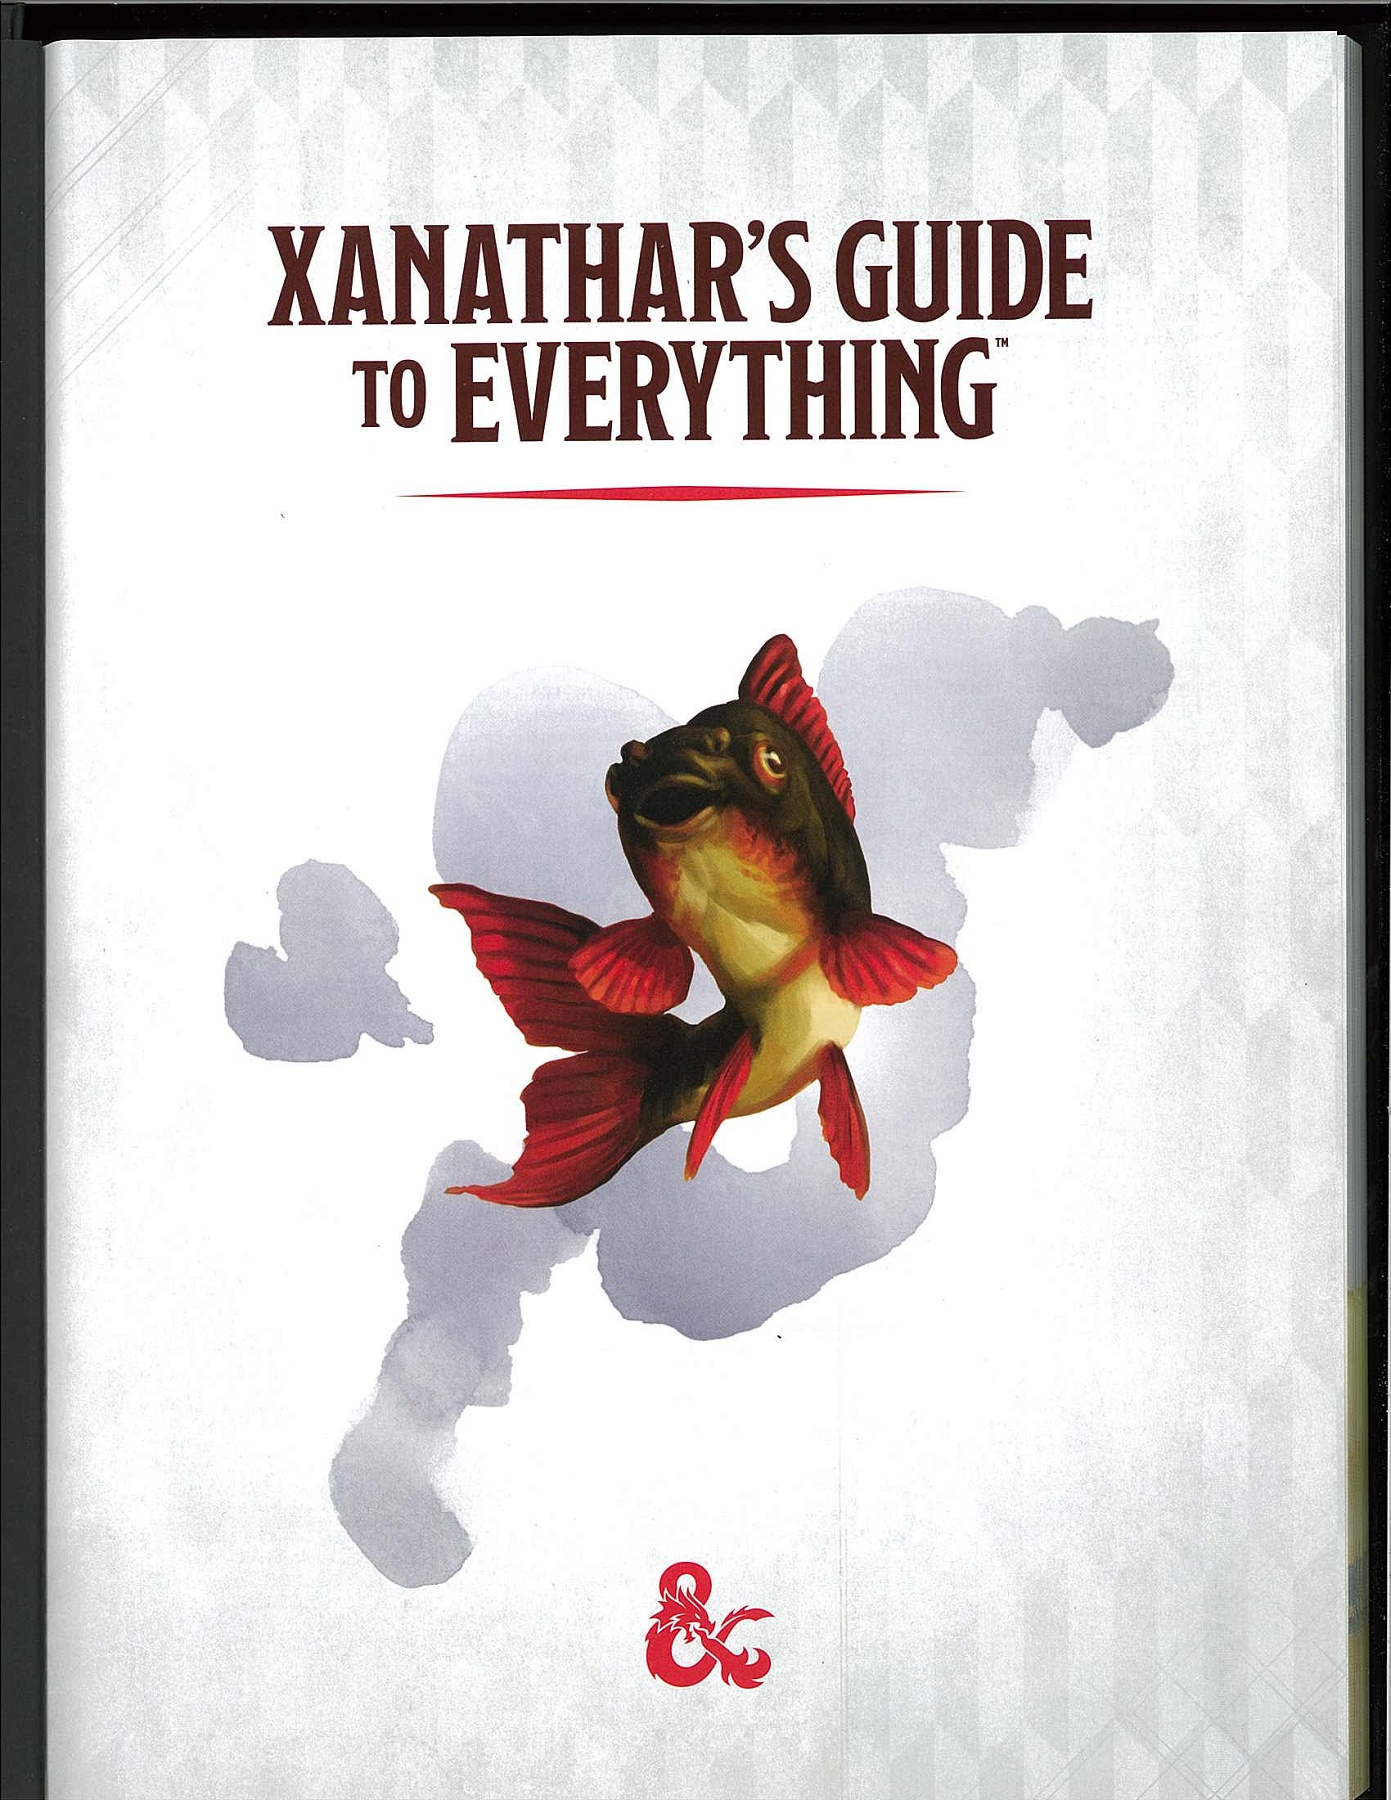 Xanathar's%20Guide%20To%20Everything pdf Pages 1 - 50 - Text